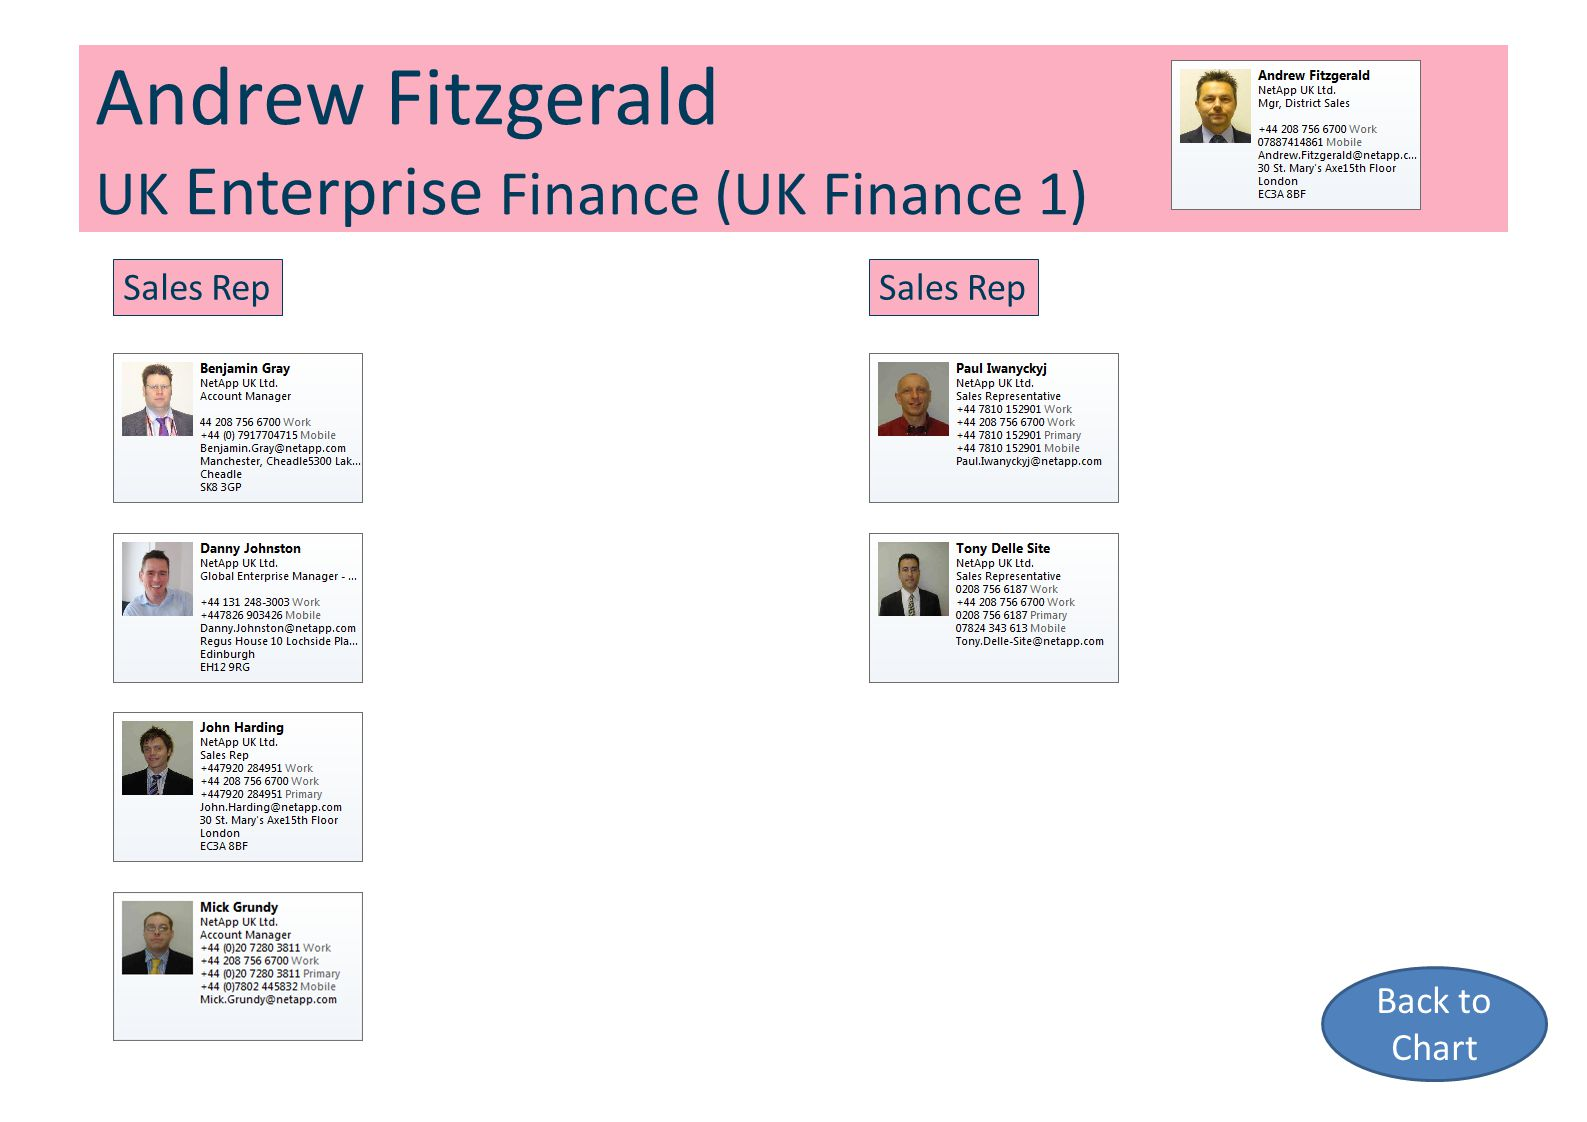 Andrew Fitzgerald UK Enterprise Finance (UK Finance 1)